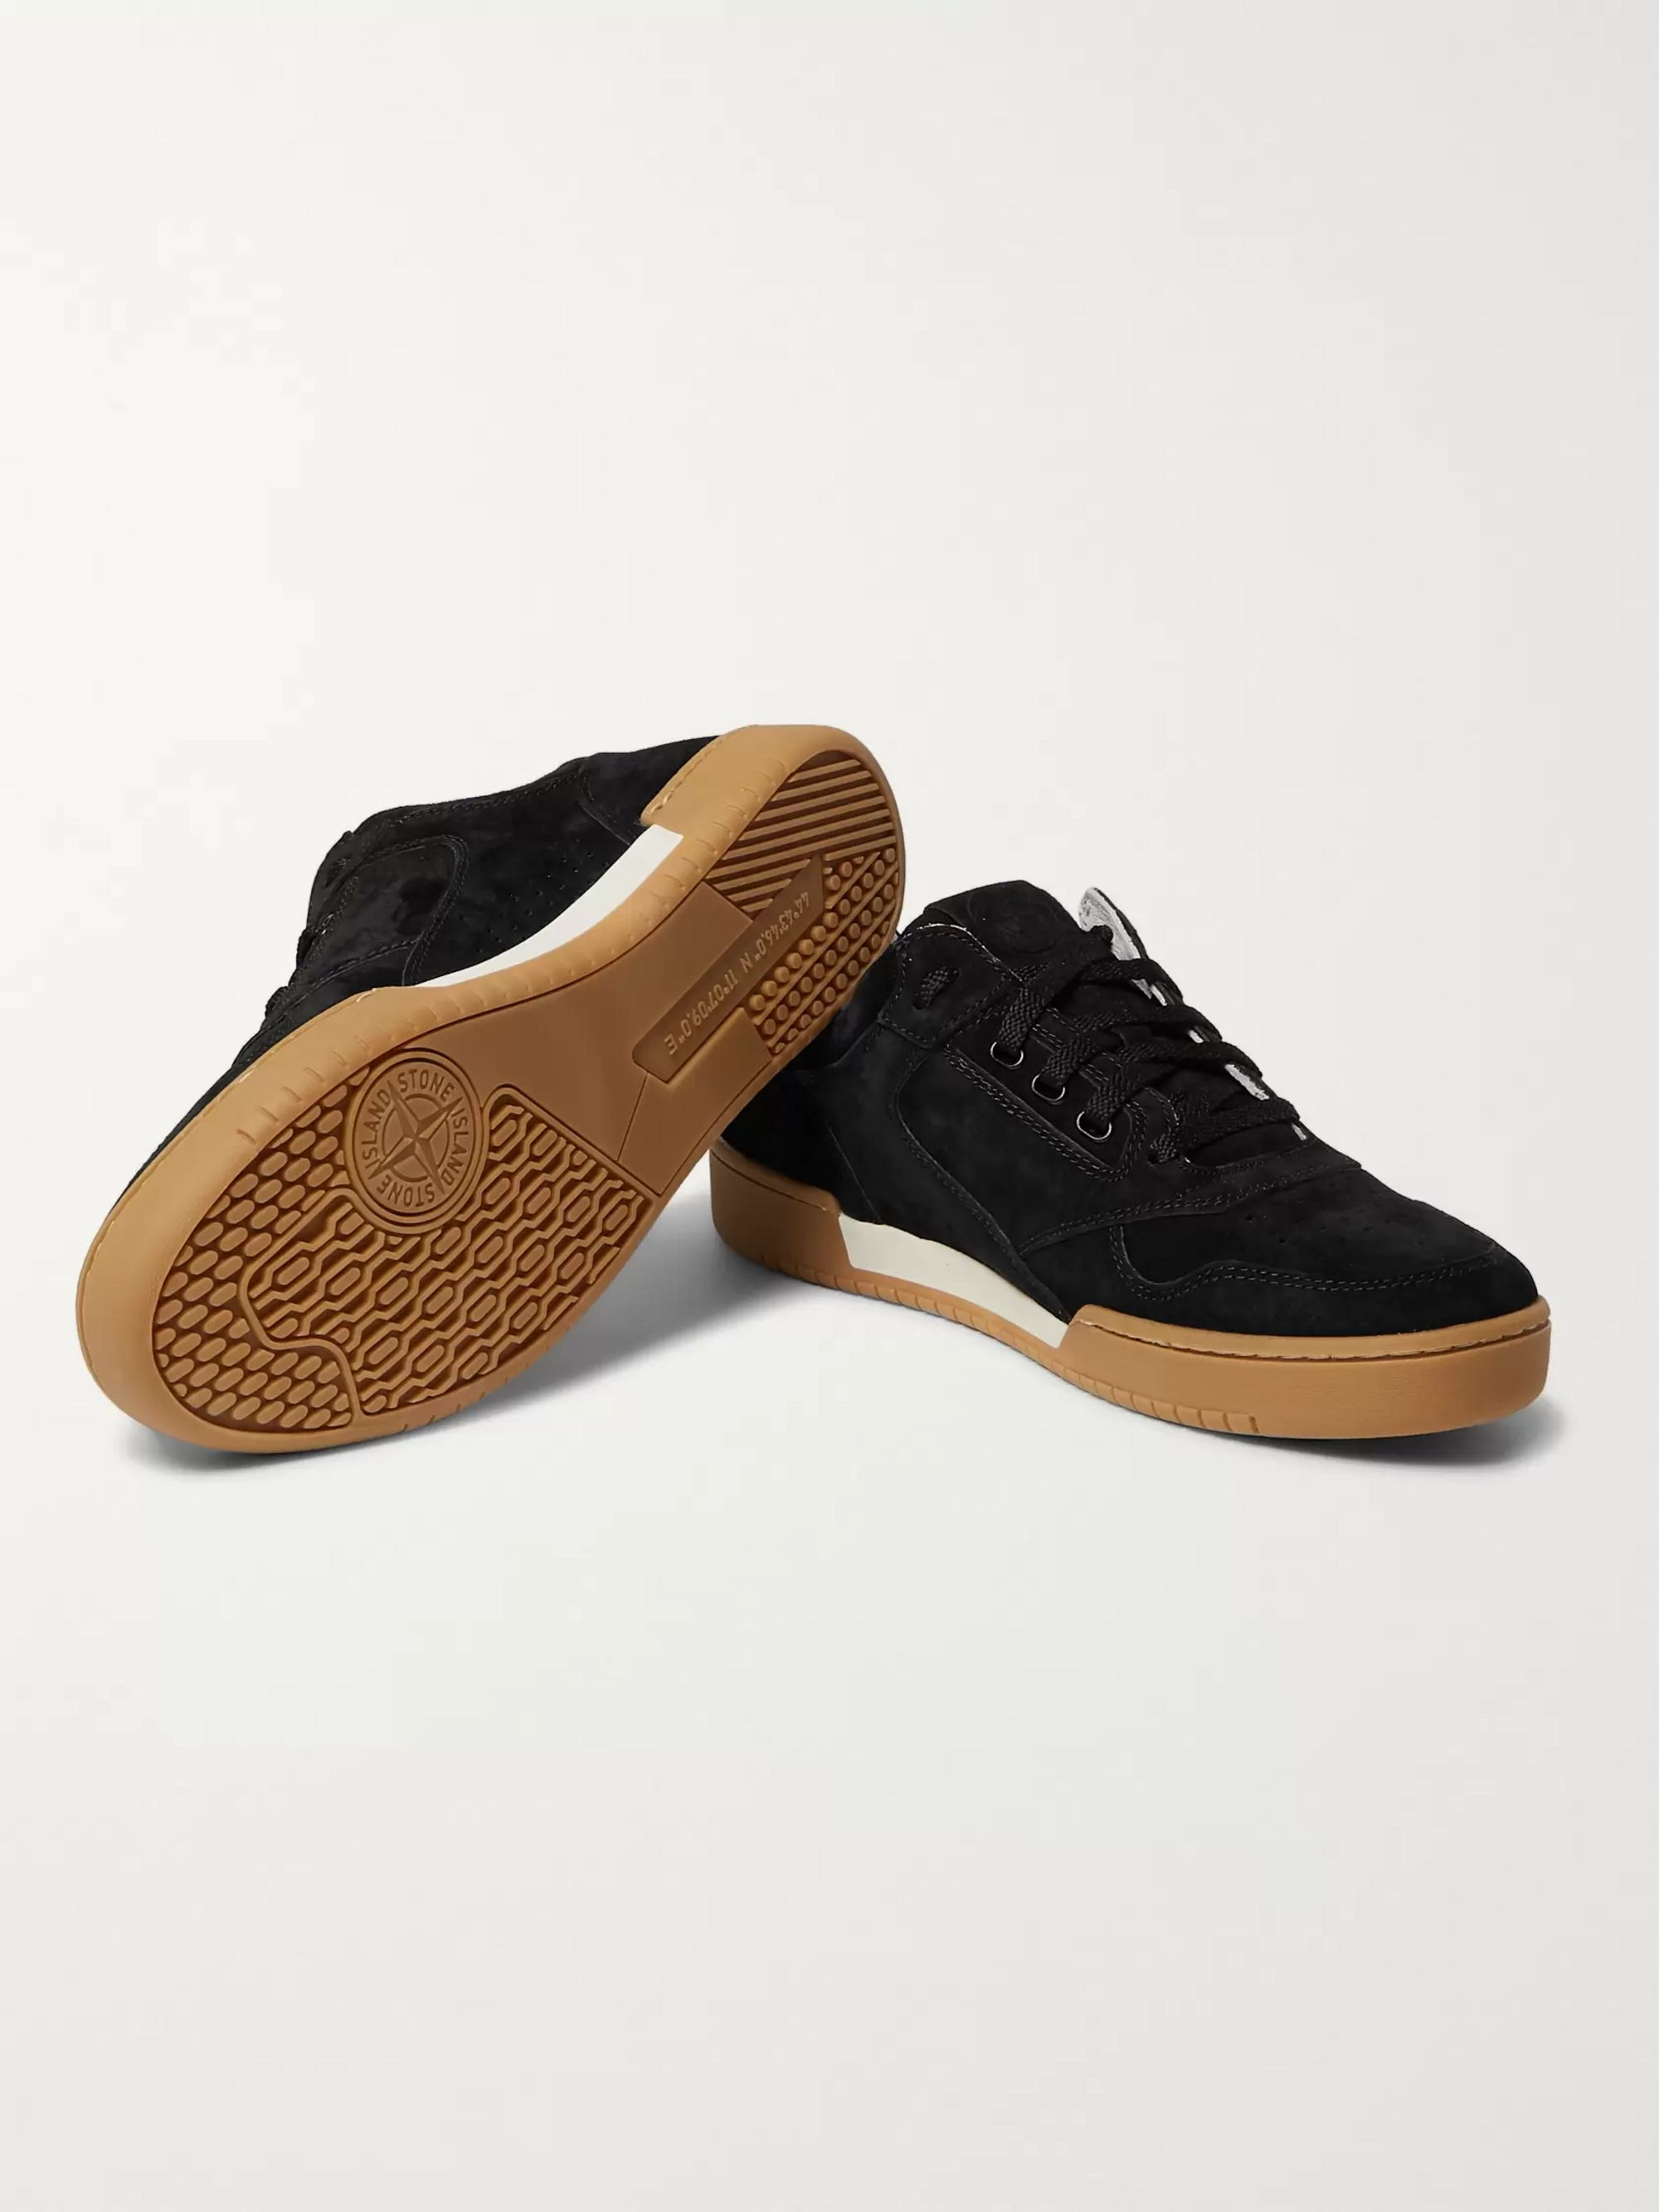 Stone Island Perforated Suede Sneakers